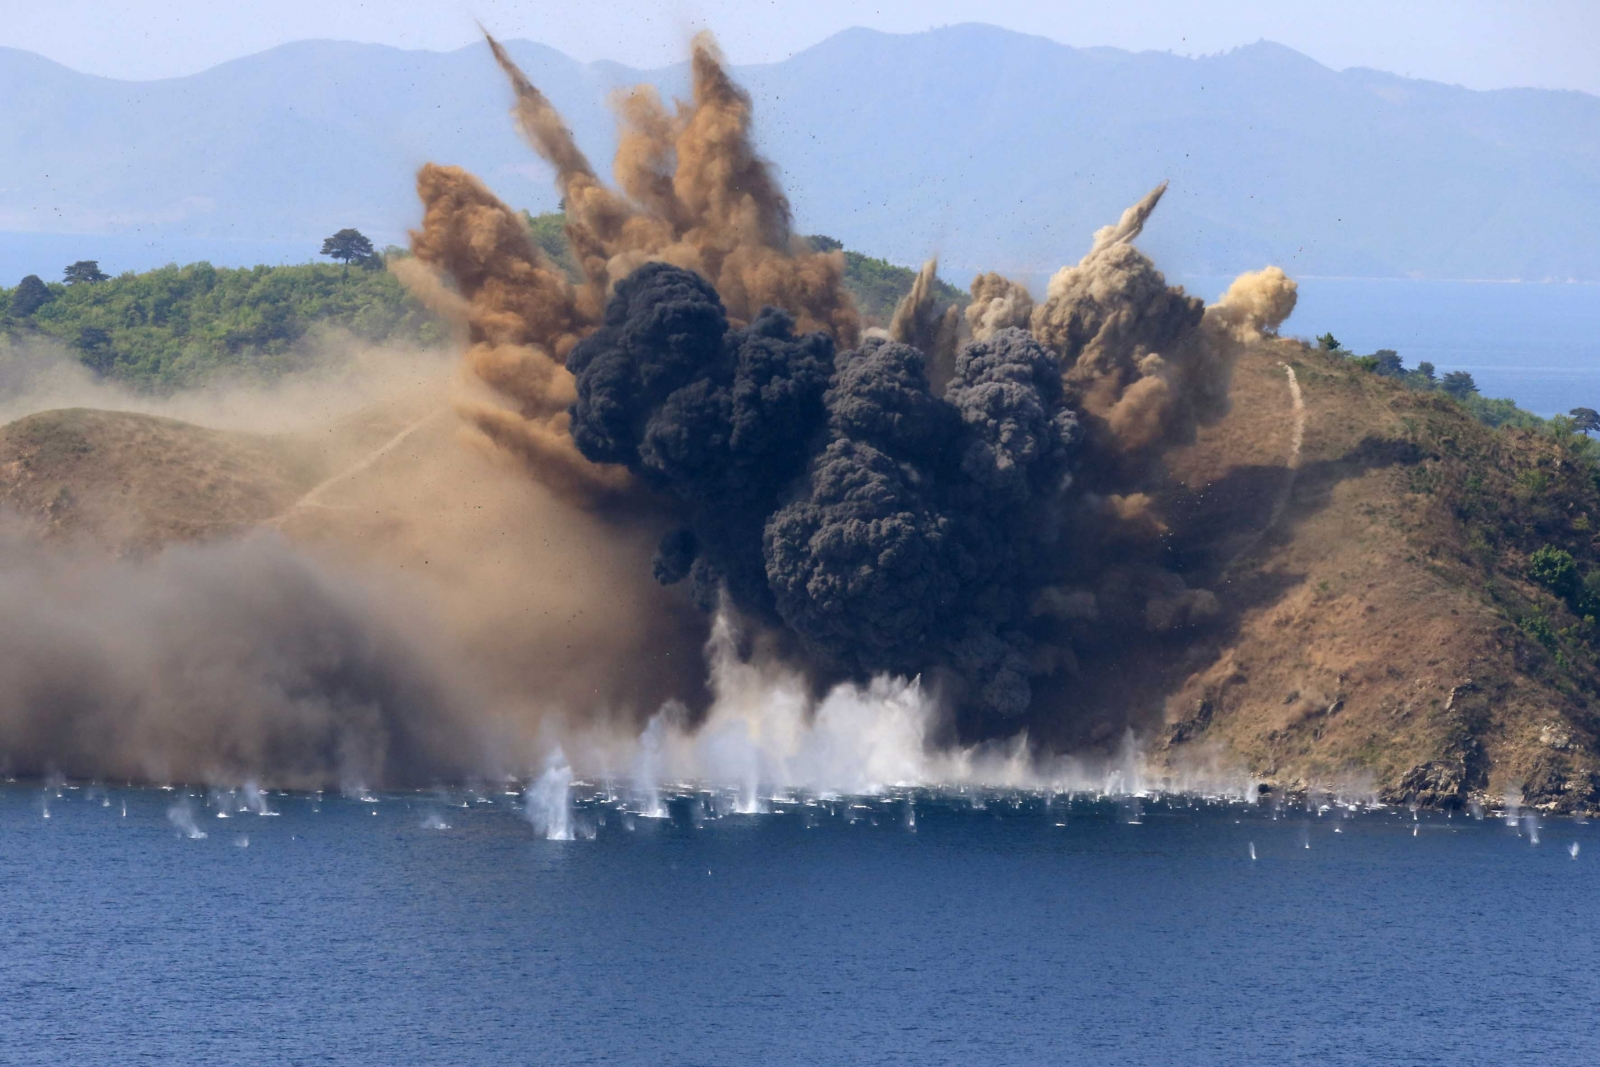 North Korea live fire exercise